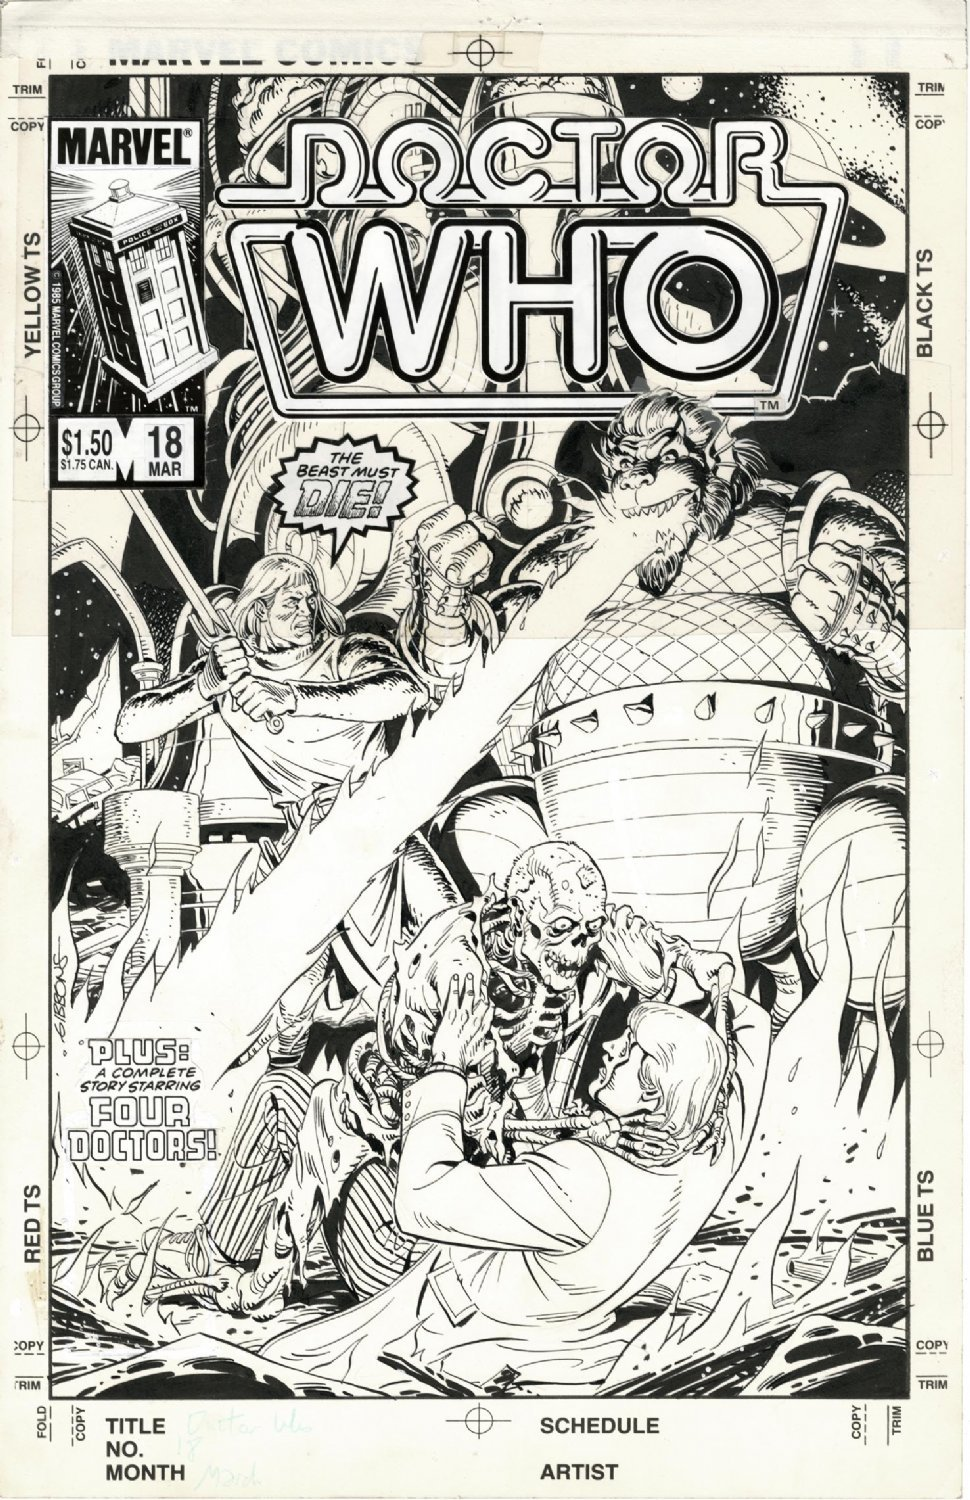 Doctor Who 18 Dave Gibbons